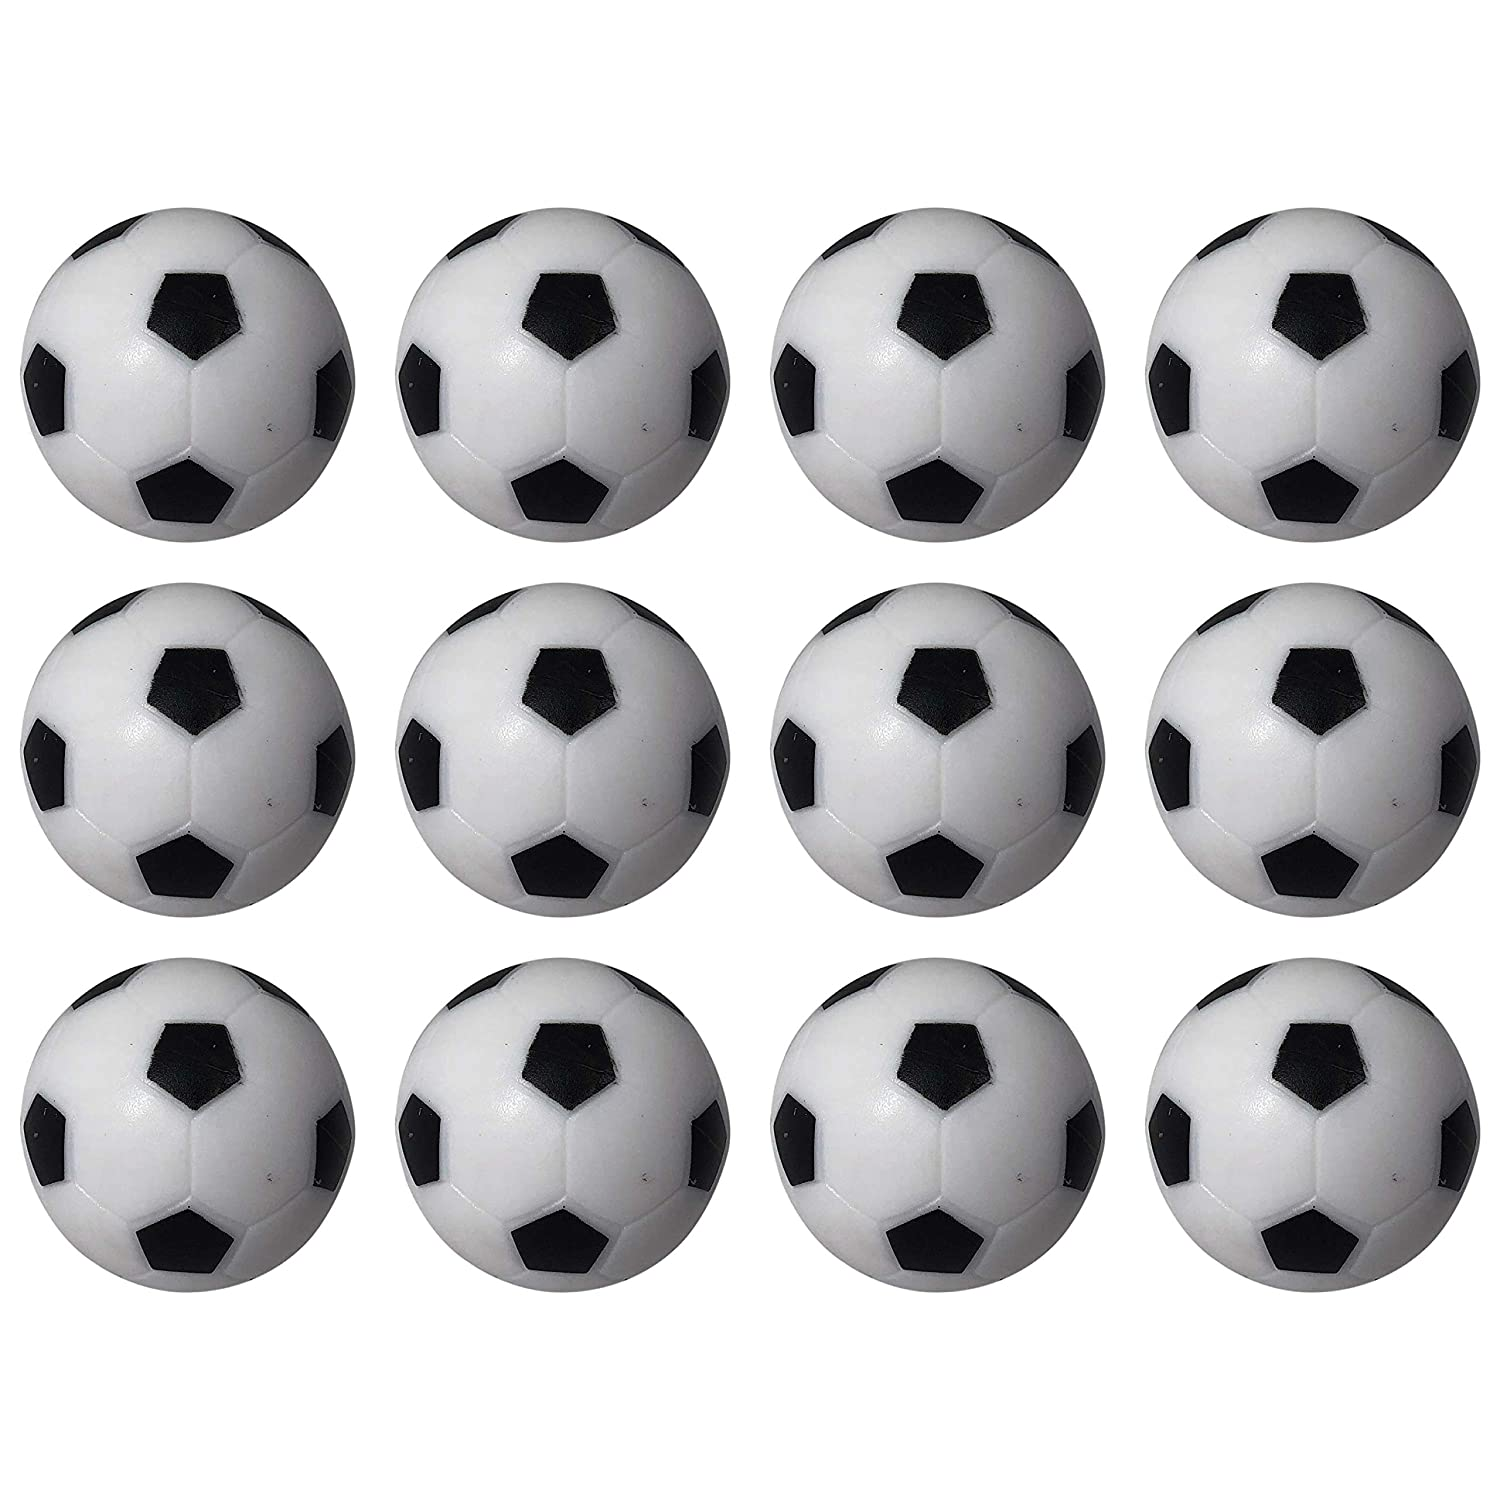 Msquared Table Soccer Foosballs Replacements Mini Black White Soccer Balls - Set of 12 jinX Commerce